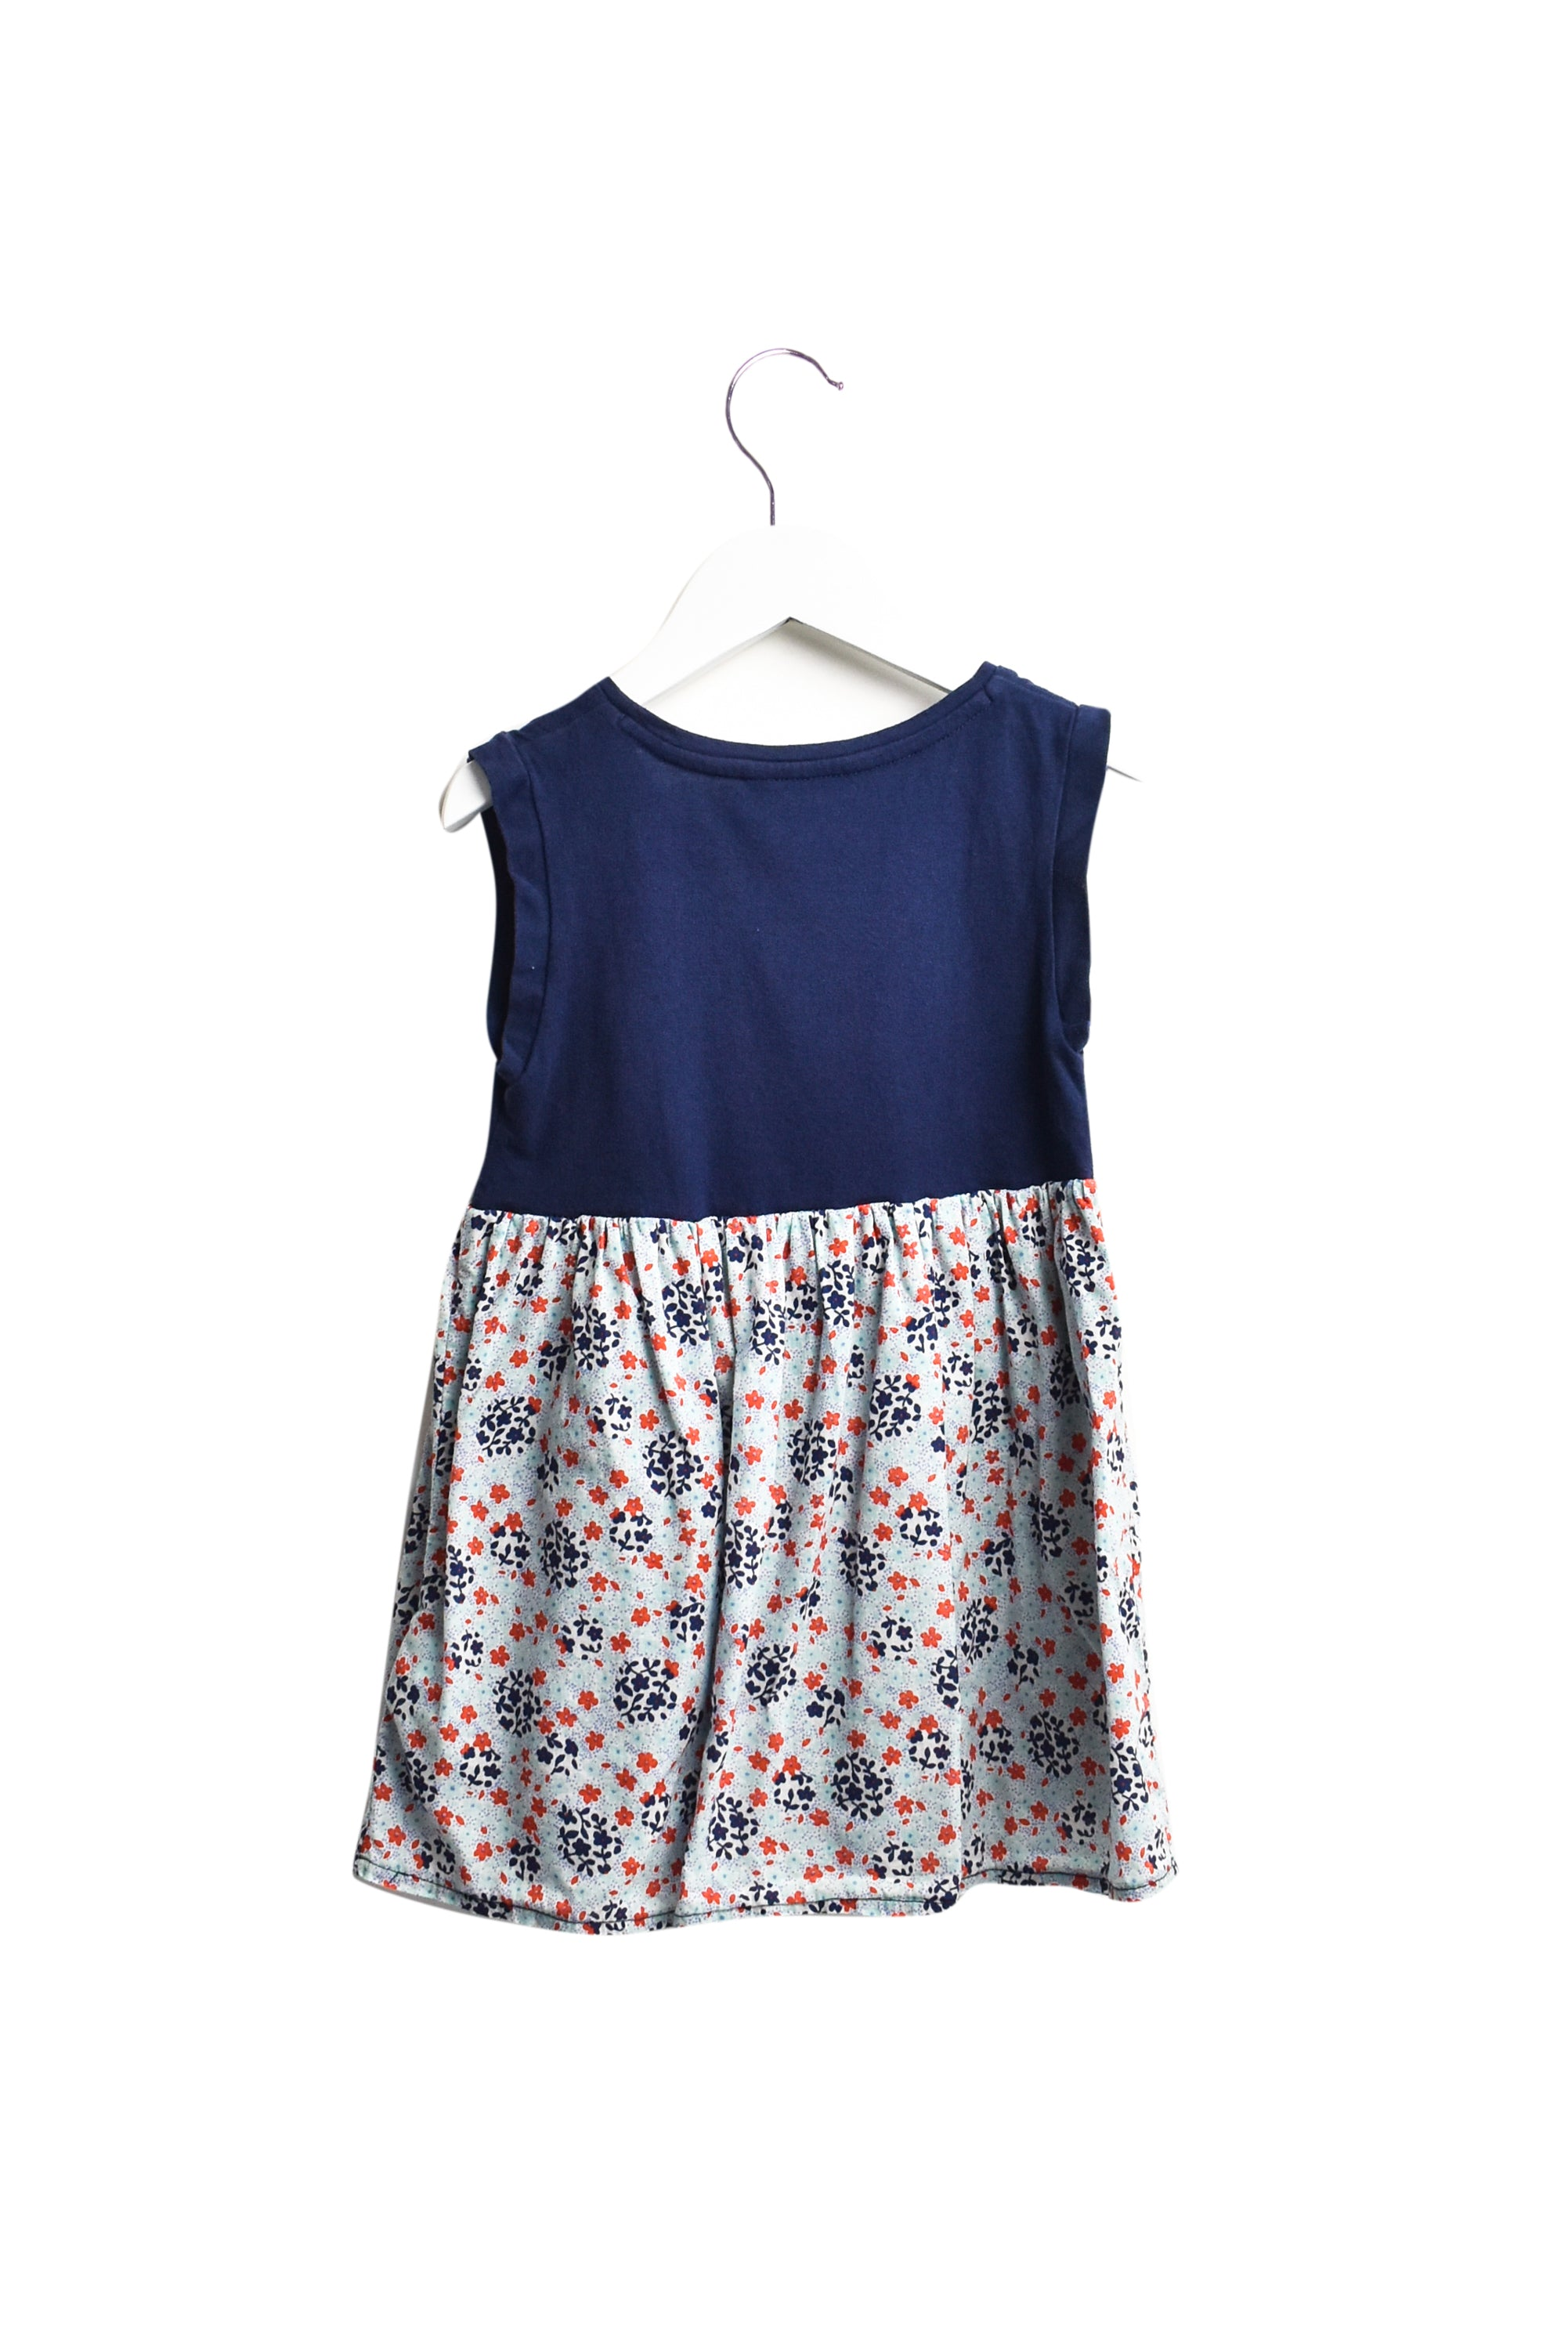 abcb5ade5 10015984 Tommy Hilfiger Kids~Dress 4T at Retykle